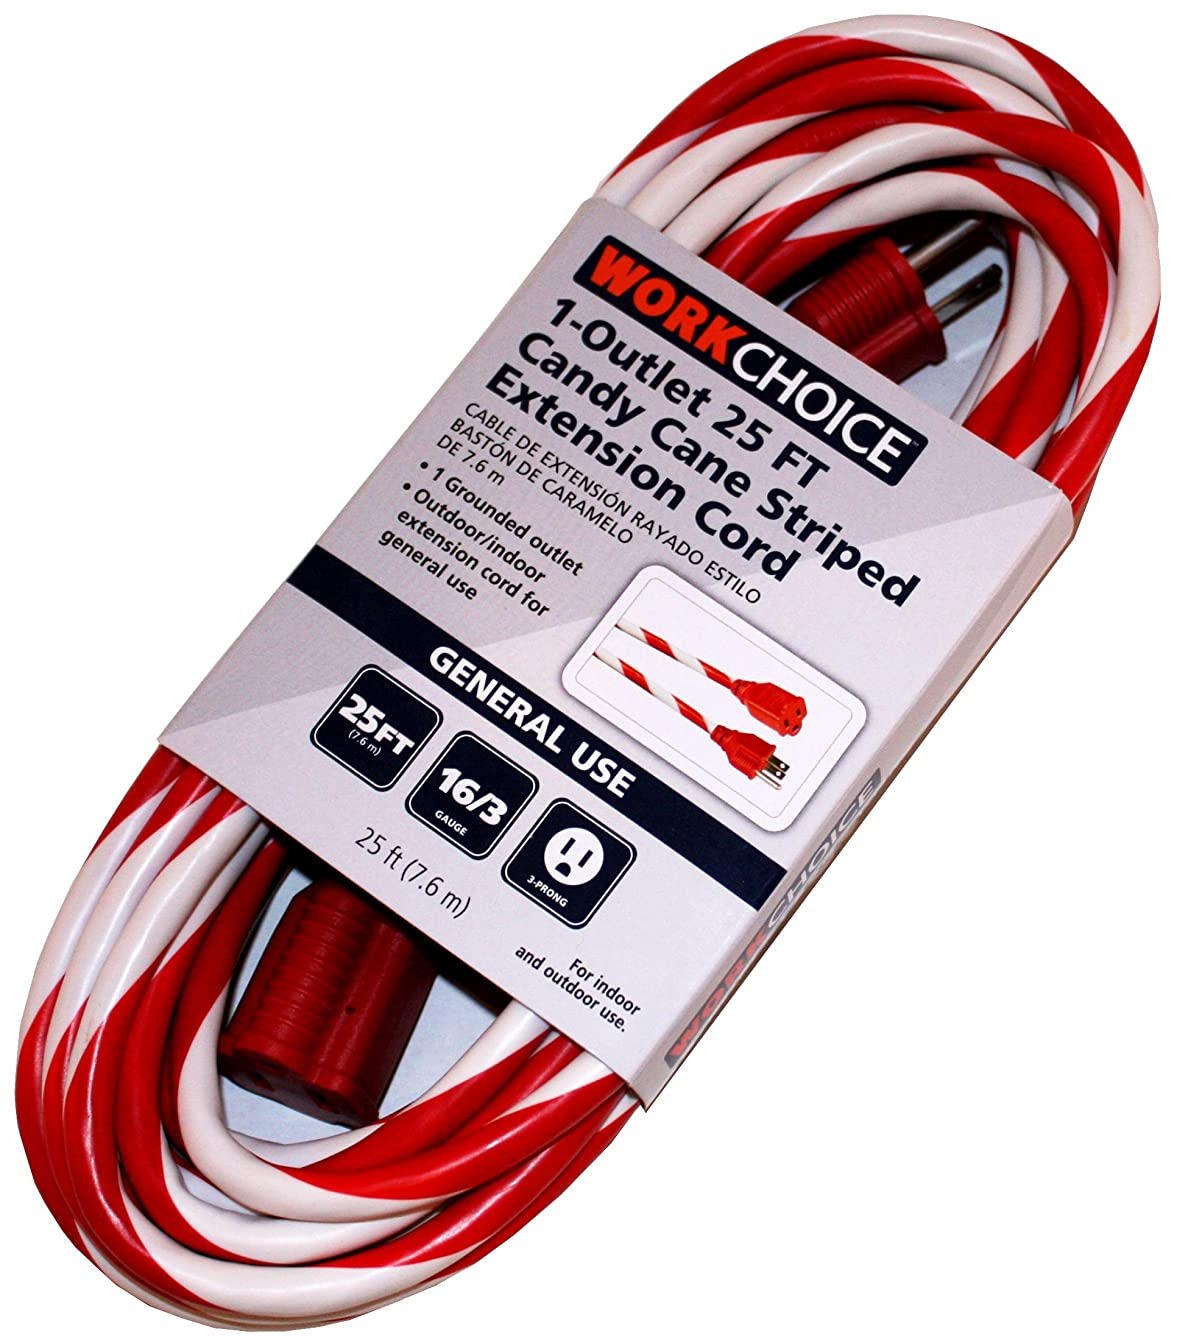 25 Ft Candy Cane Striped Extension Cord